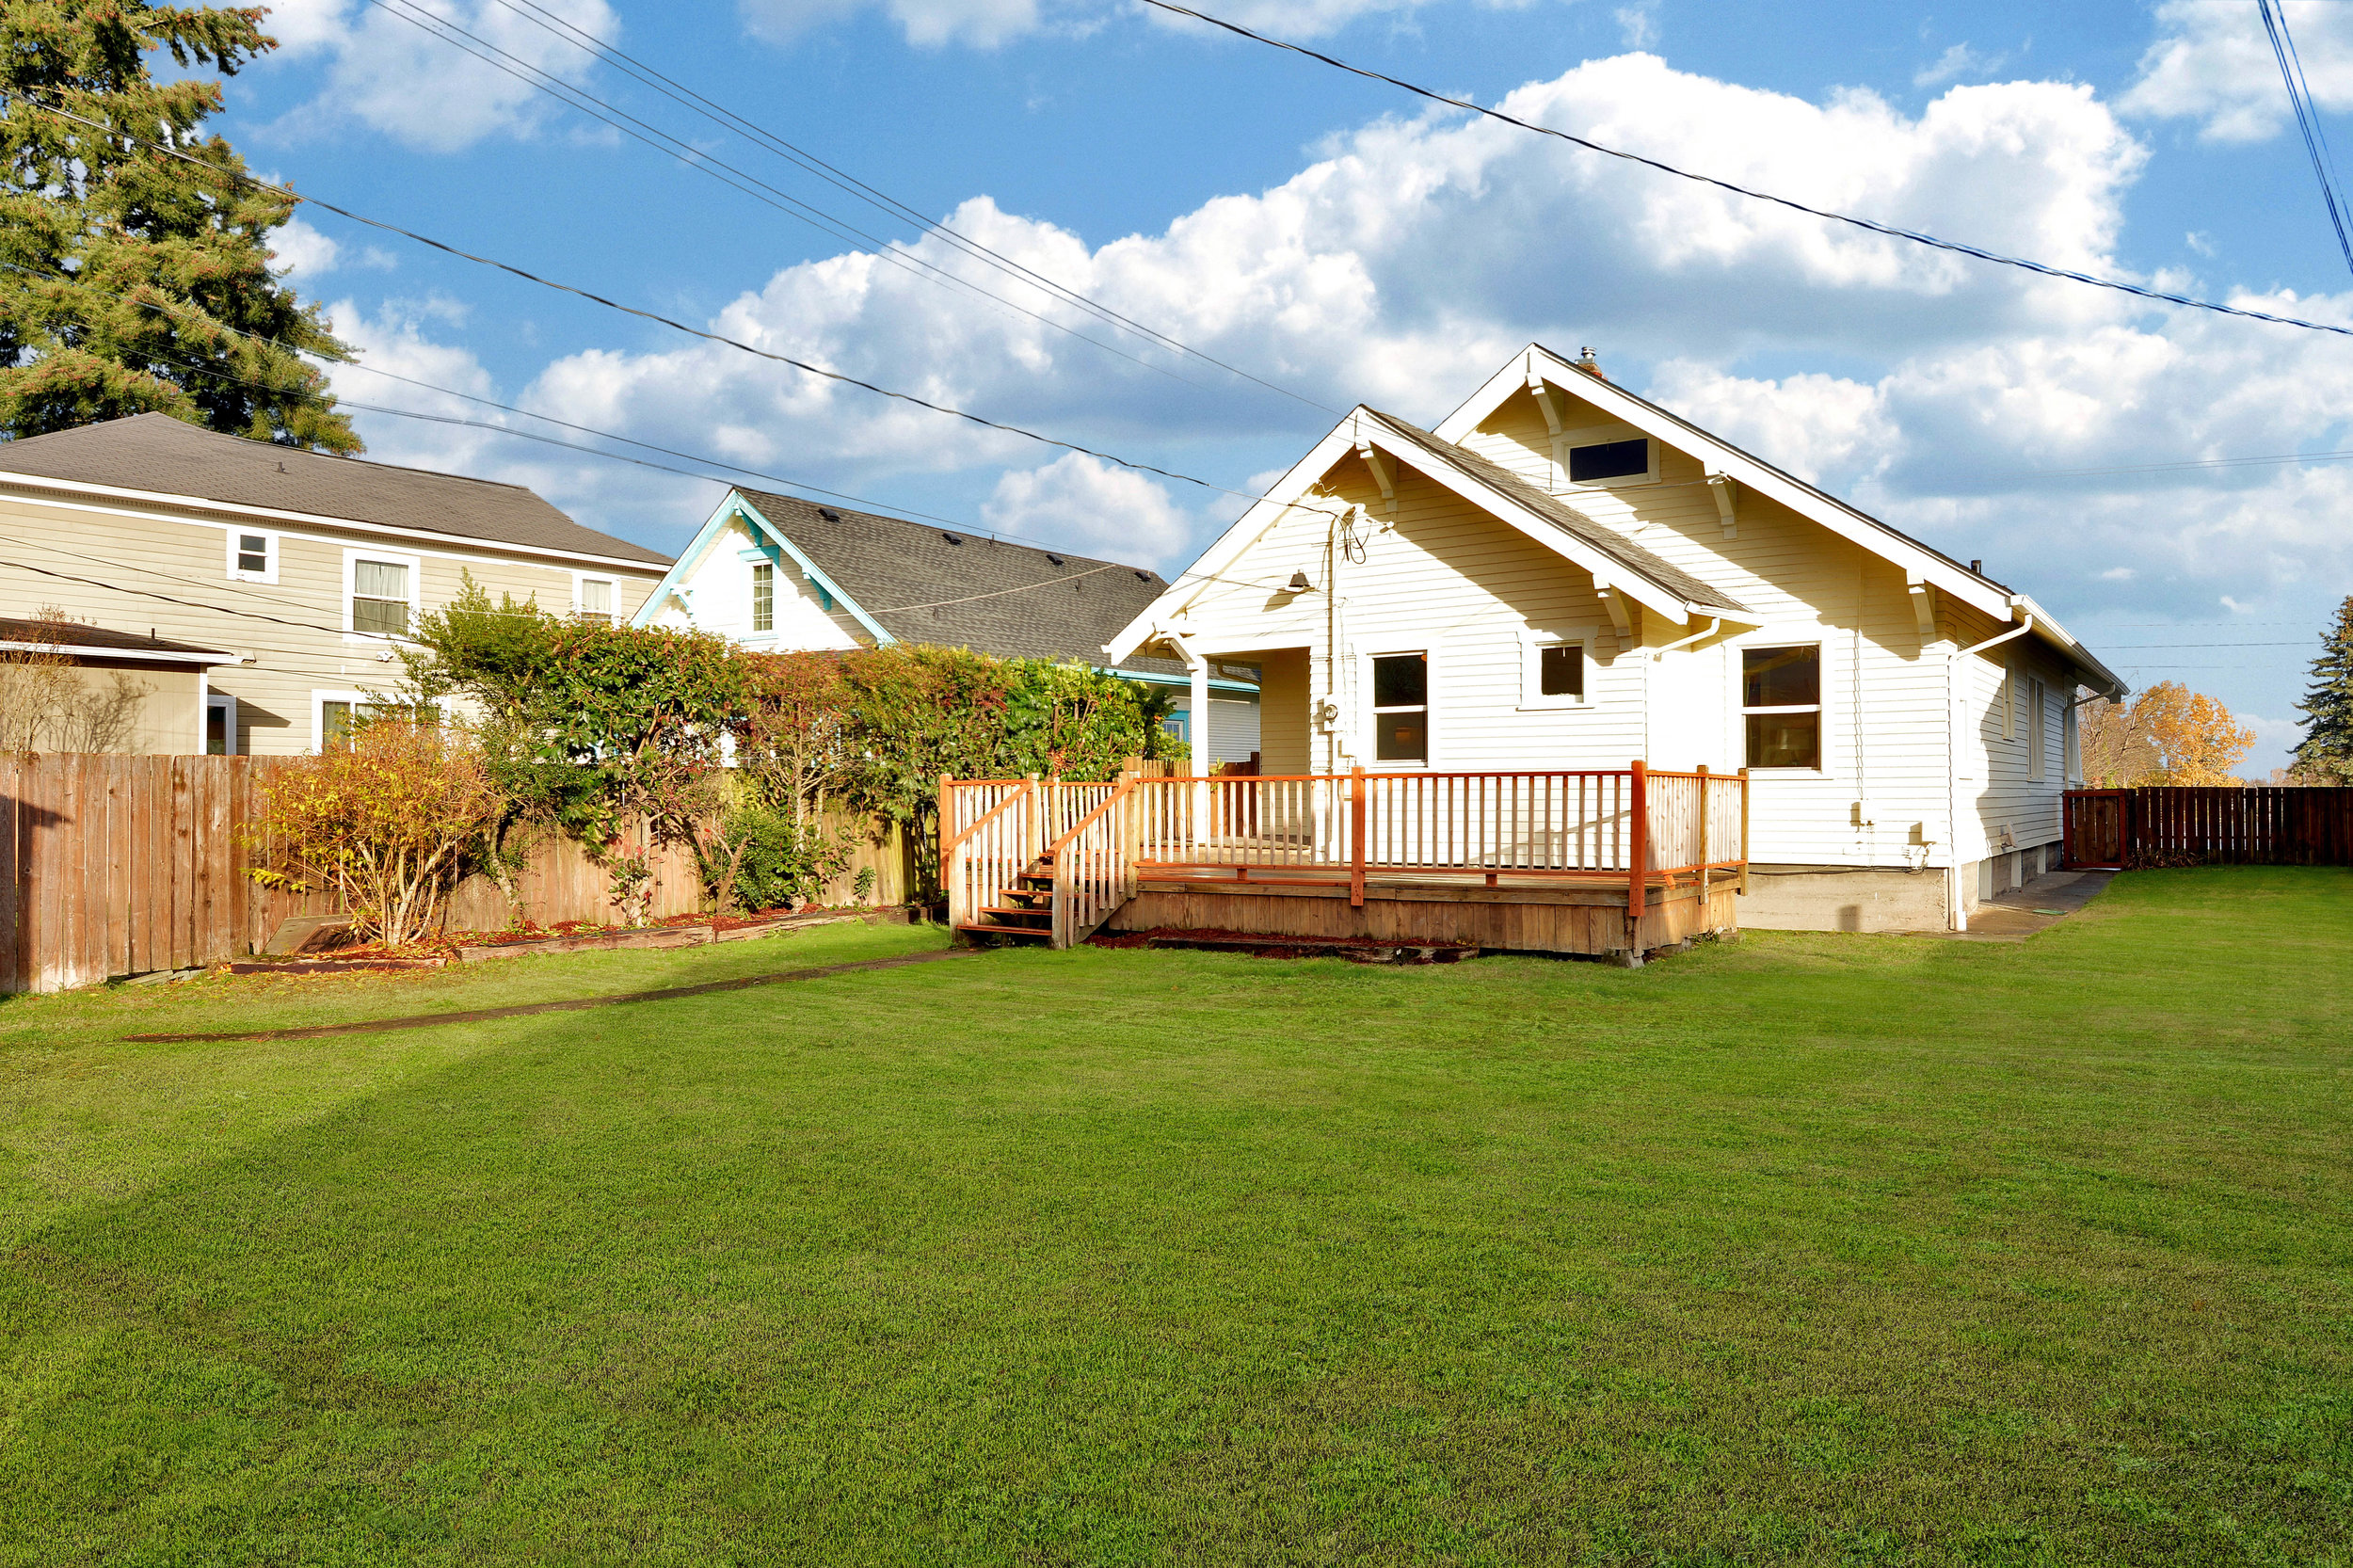 The fully-fenced back yard is big! There's room for flower beds, a vegetable garden, swings set, room for pets, and room to play.